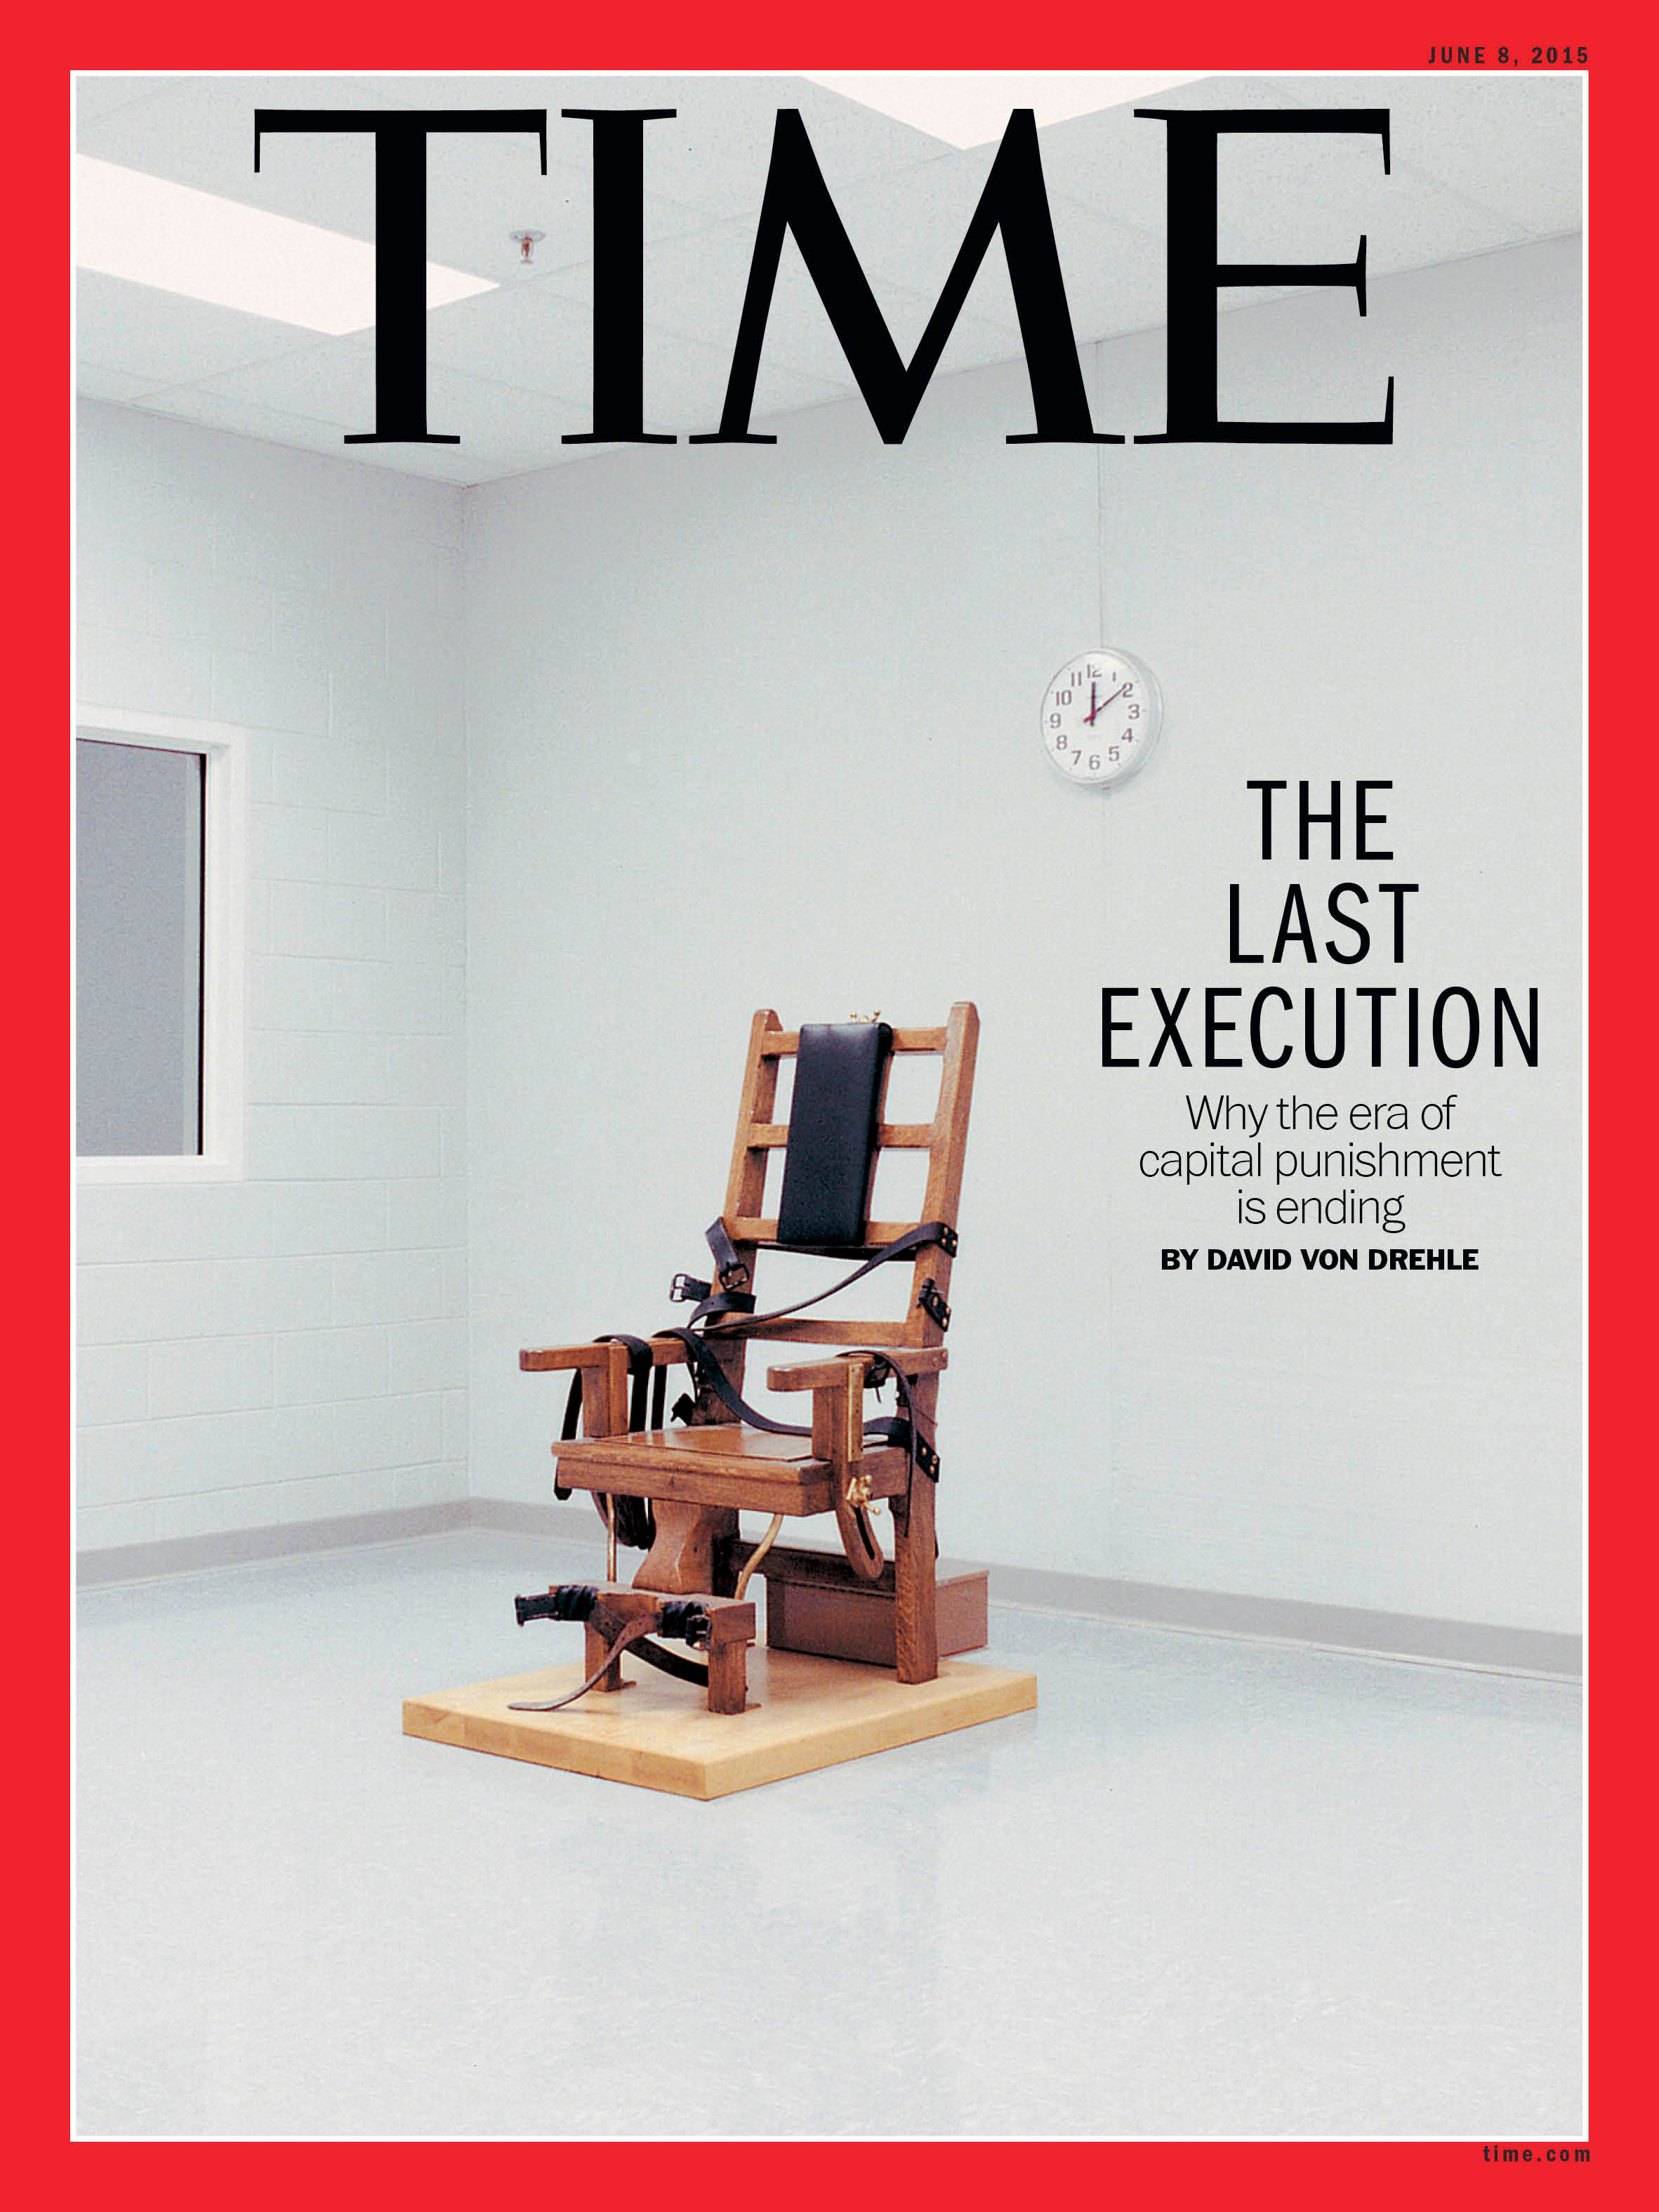 TIME Magazine Poses Five Reasons for Death Penalty Decline  Death Penalty Information Center